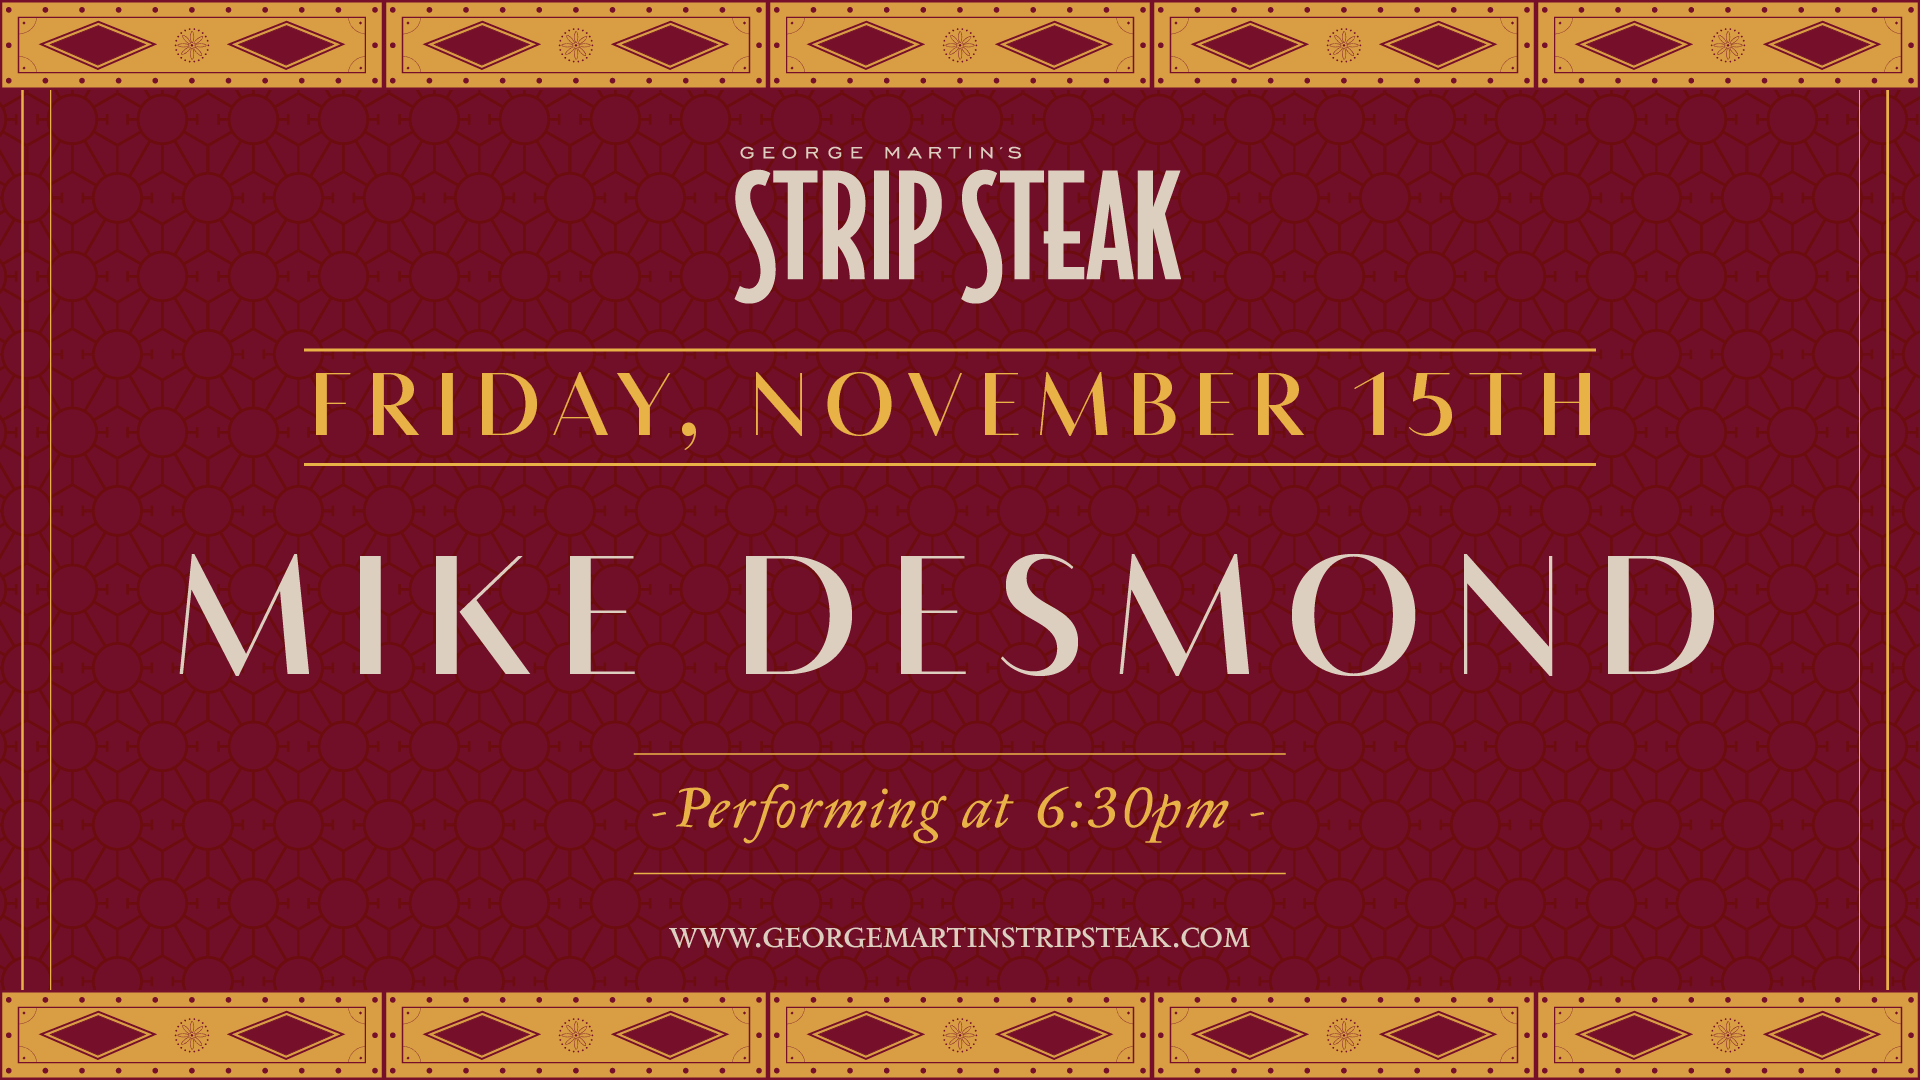 Flyer for Friday, November 15th with Mike Desmond performing at 6:30pm.